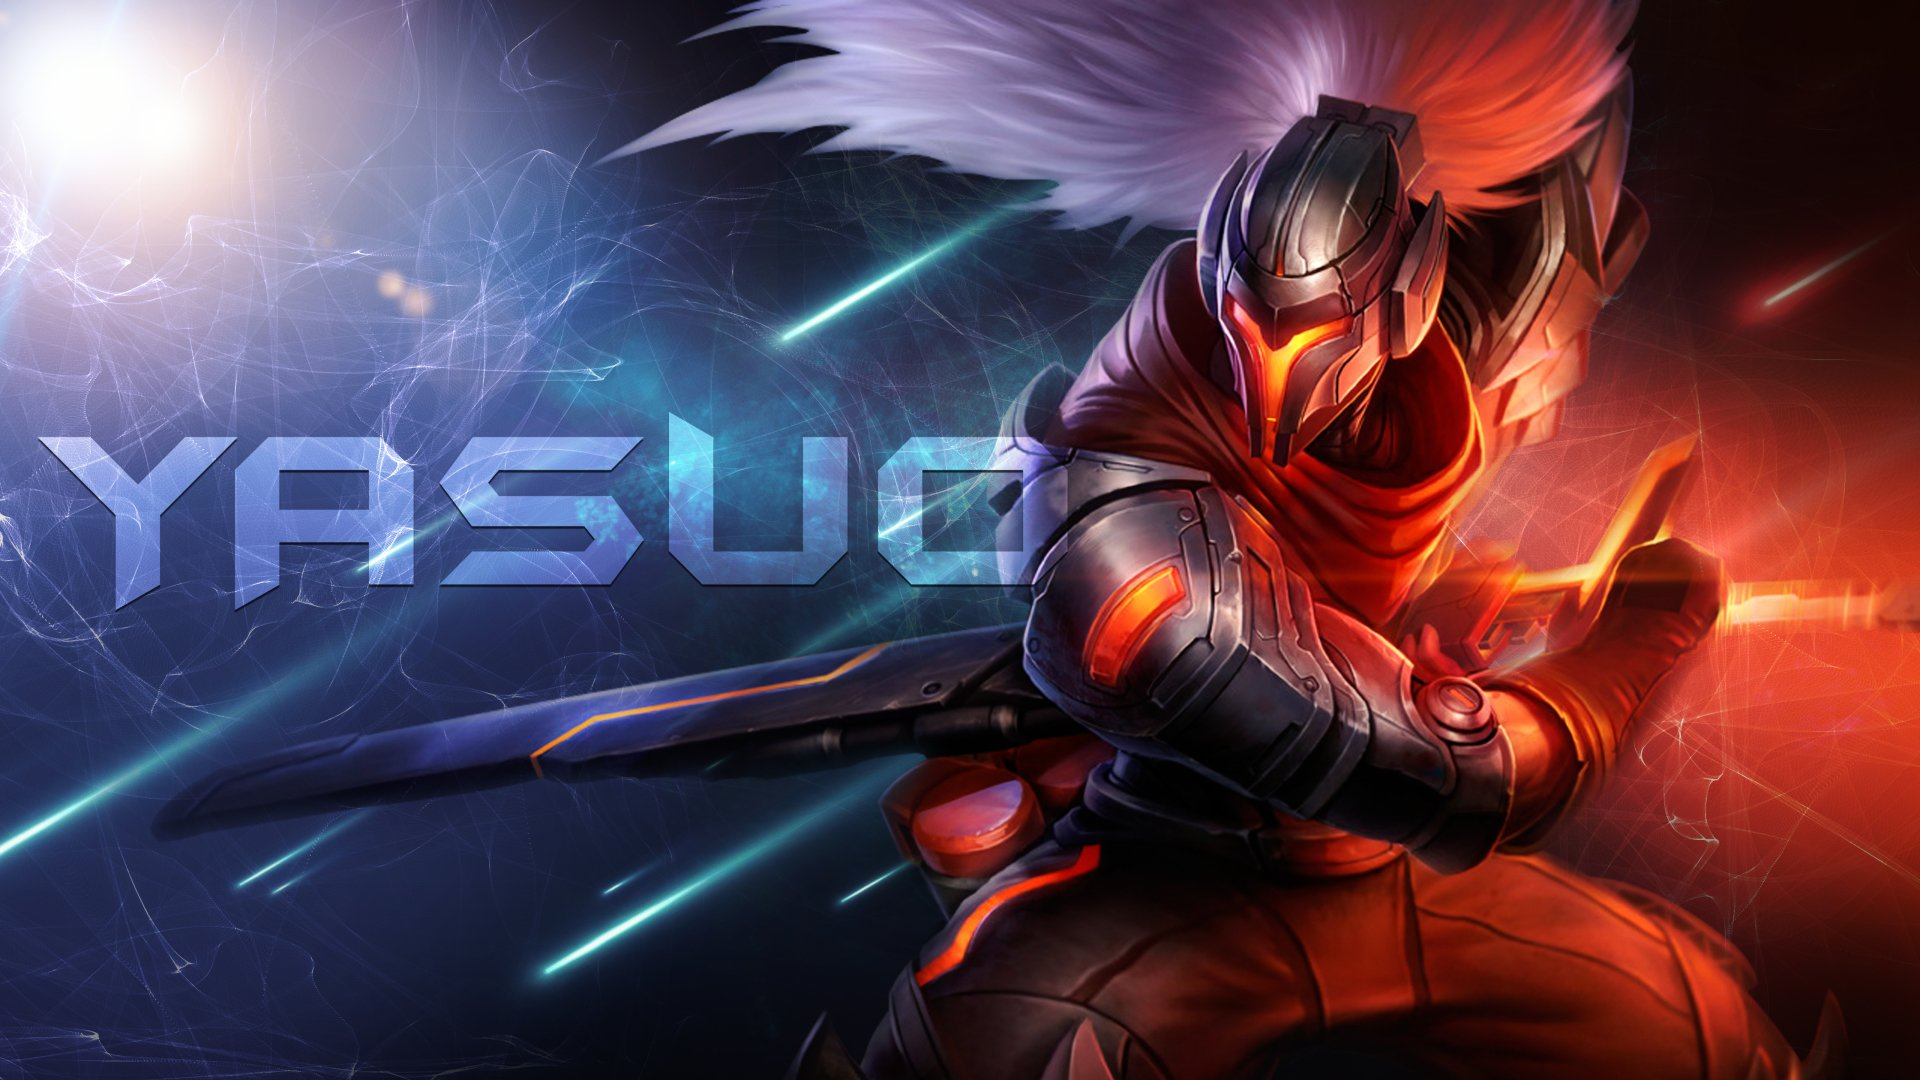 Video Game - League Of Legends  Yasuo (League Of Legends) Wallpaper